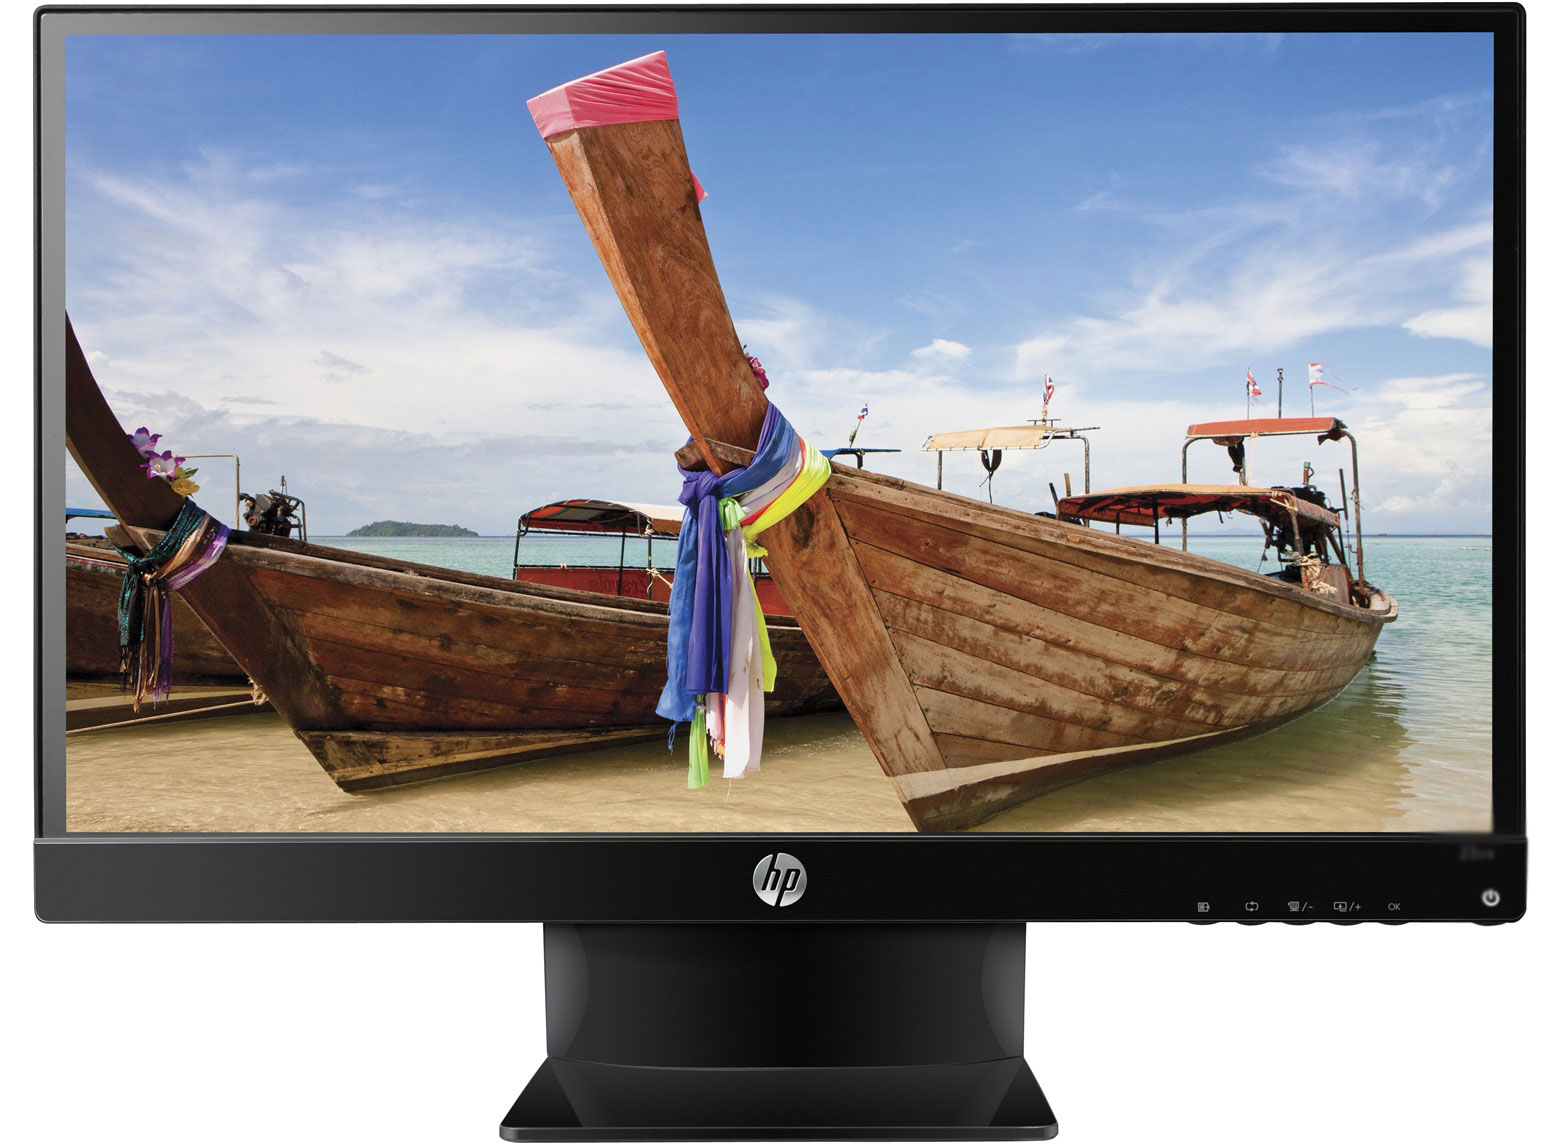 Refurbished - HP Pavilion 25vx 25 IPS LED Backlit Monitor 1920x1080 Full HD VGA DVI HDMI 7ms